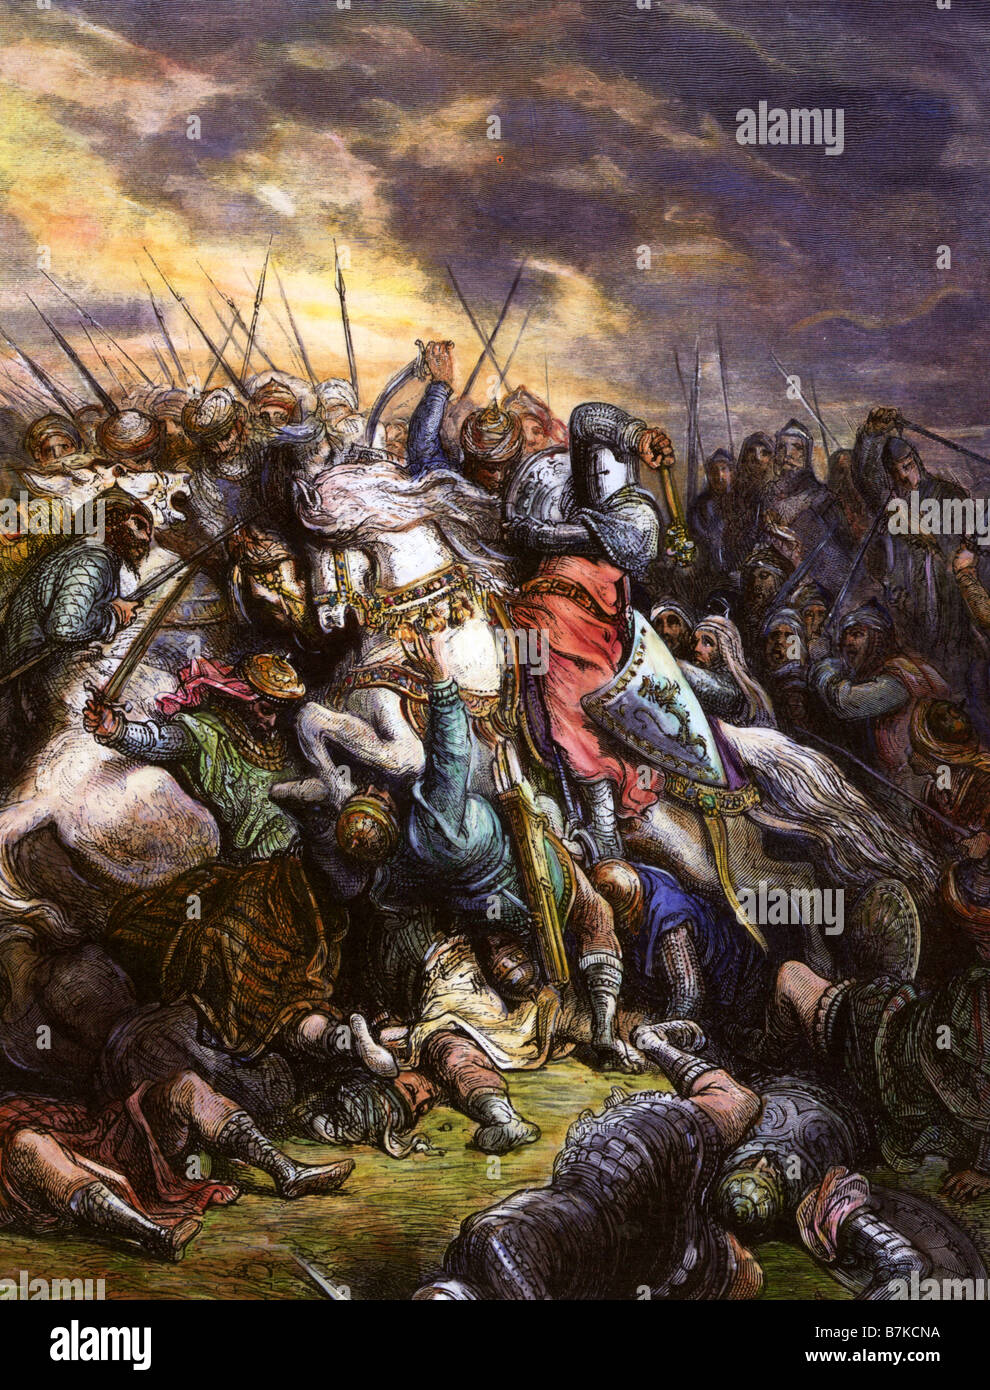 RICHARD I Richard the Lionheart leads the Crusaders against Saladin's Muslim army  at the Battle of Arsuf in - Stock Image